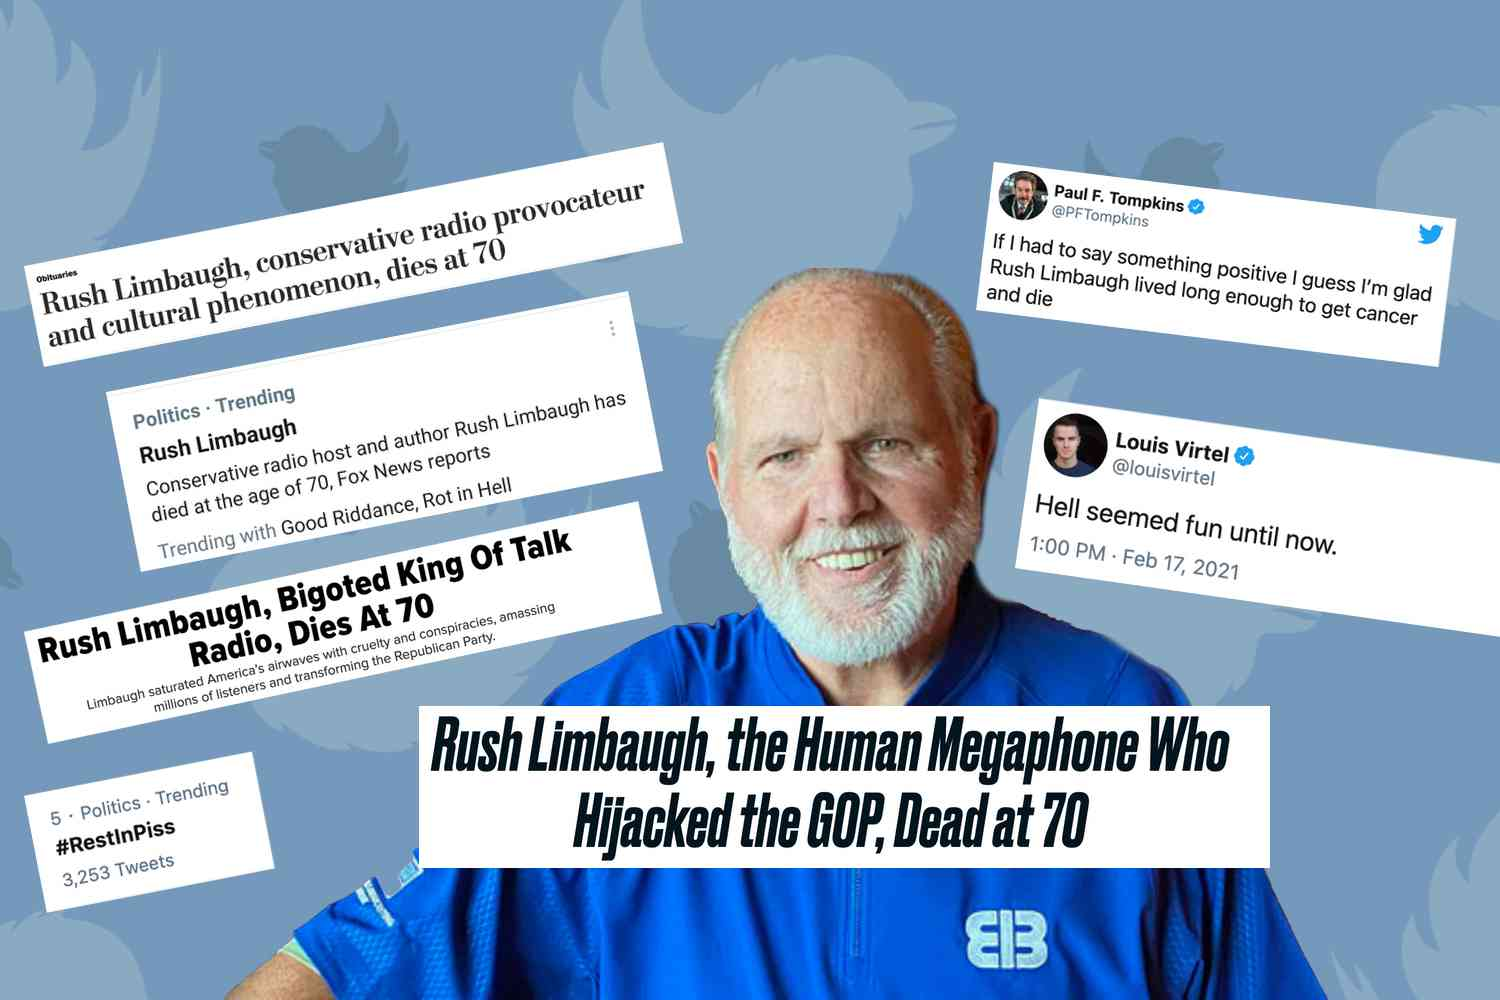 Rush Limbaugh Death Celebration (https://notthebee.com/article/the-tolerant-left-is-already-mocking-rush-limbaugh-after-his-death)